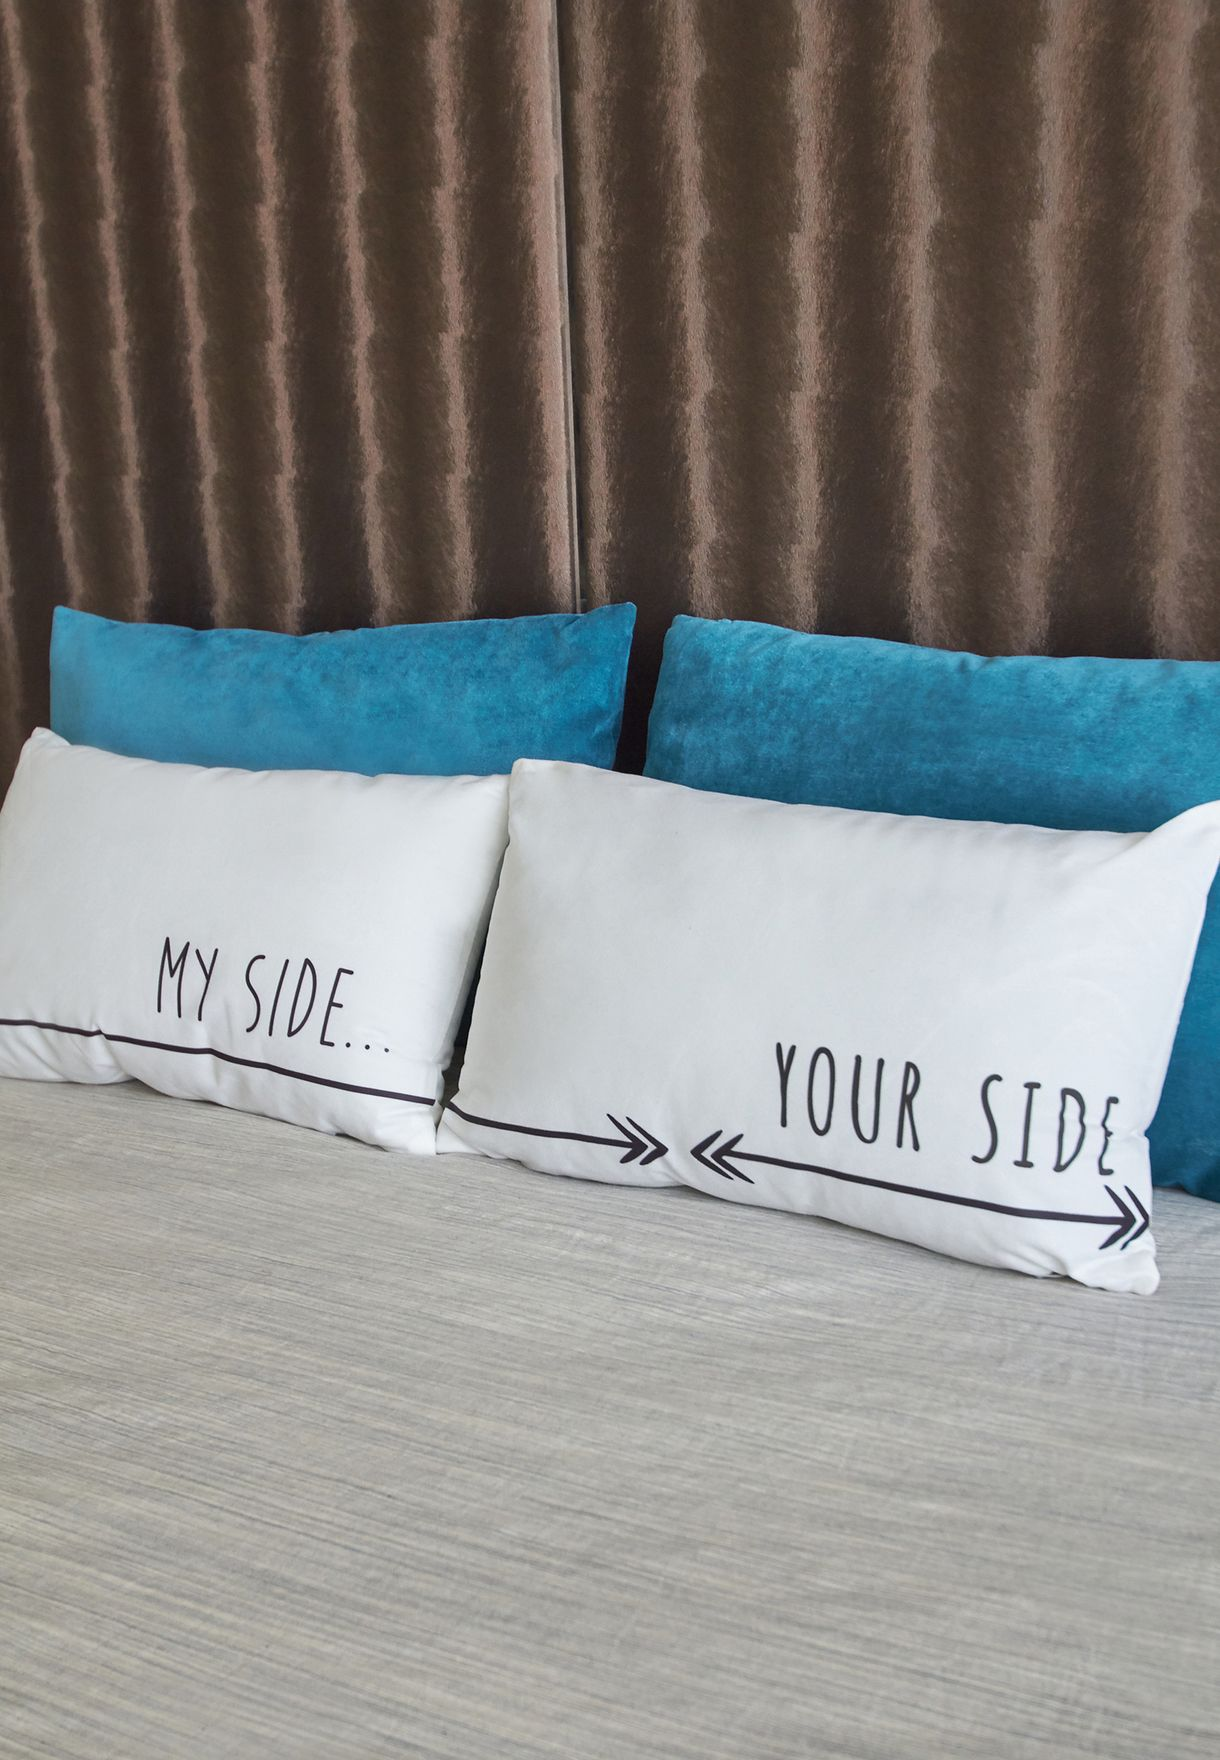 30x50 Your Side My Side Pillow Case Set